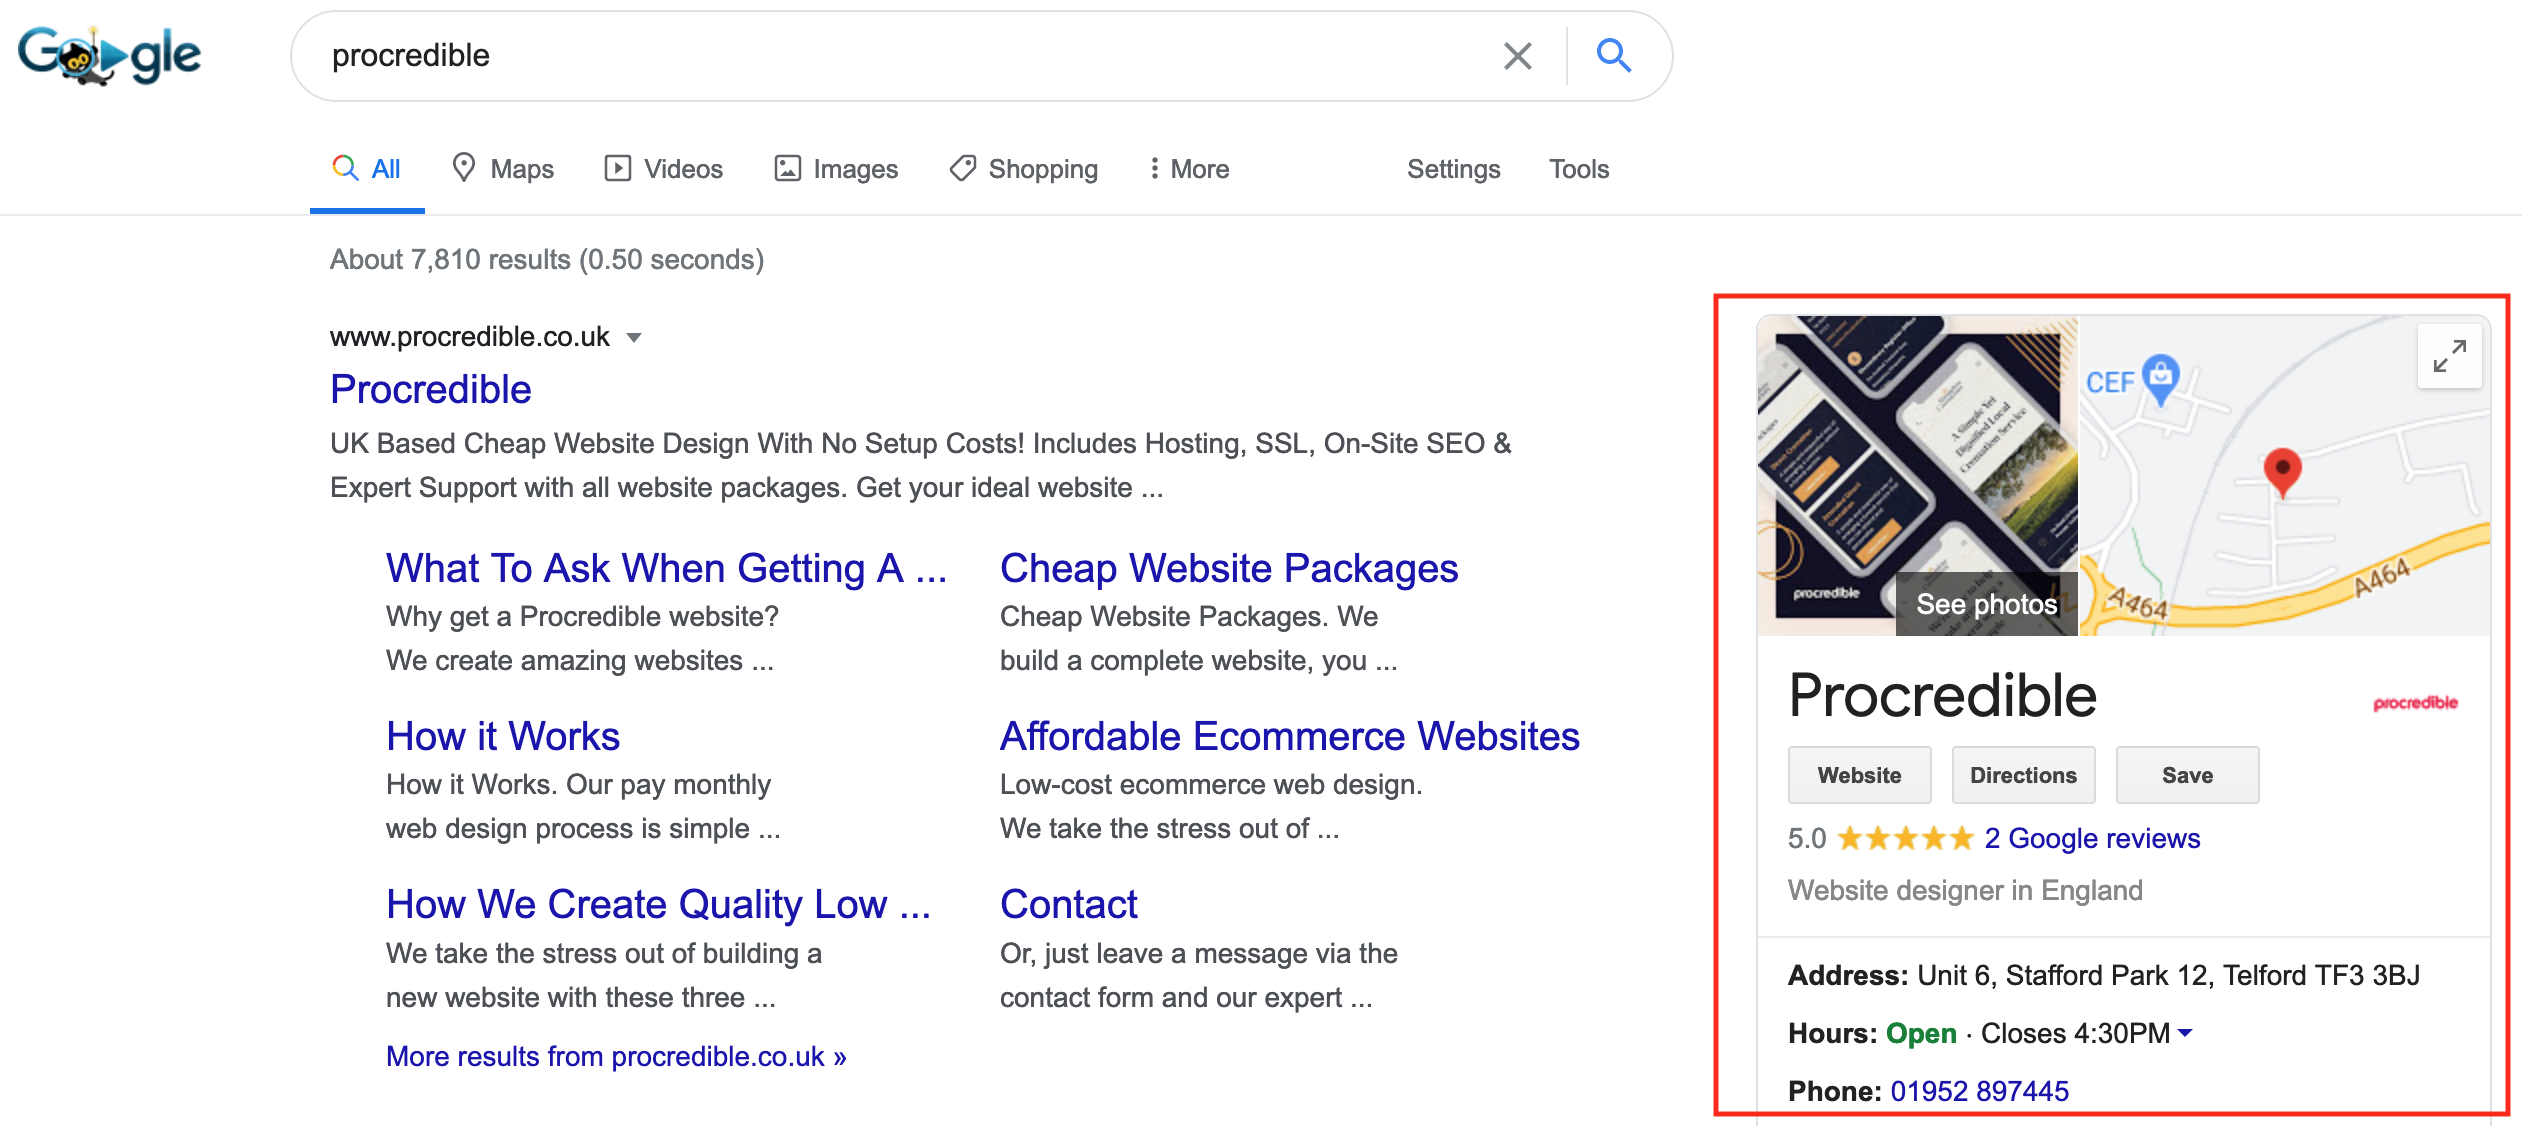 Google-business-information-example